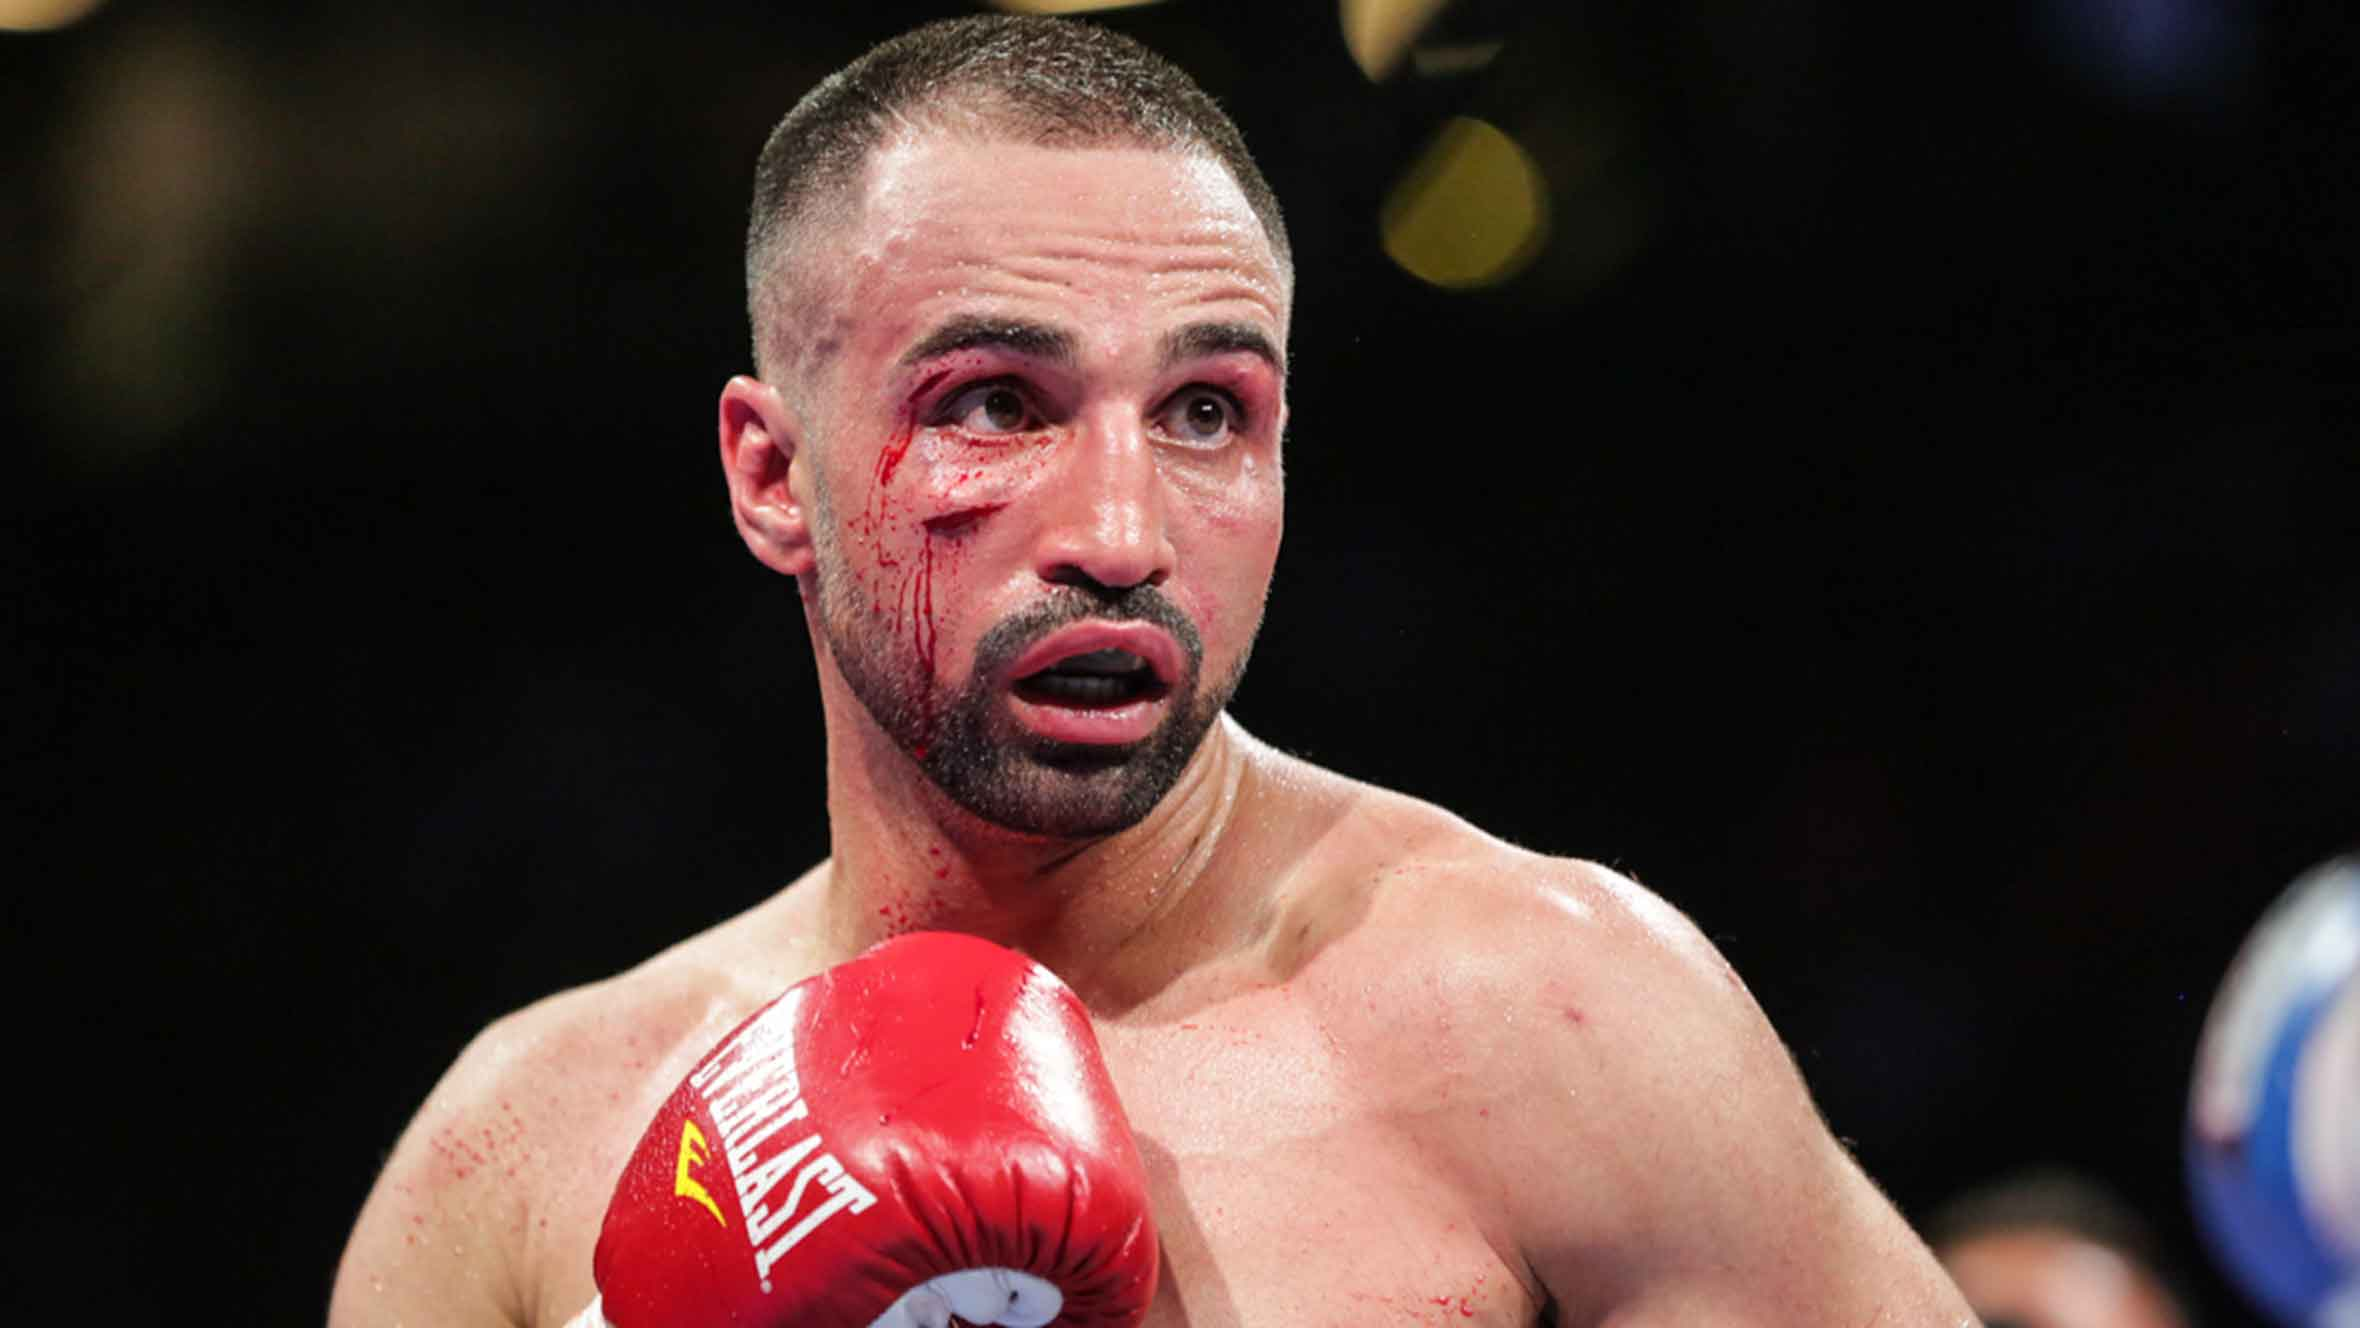 For Brooklyn S Paulie Malignaggi The Road Likely Ends In